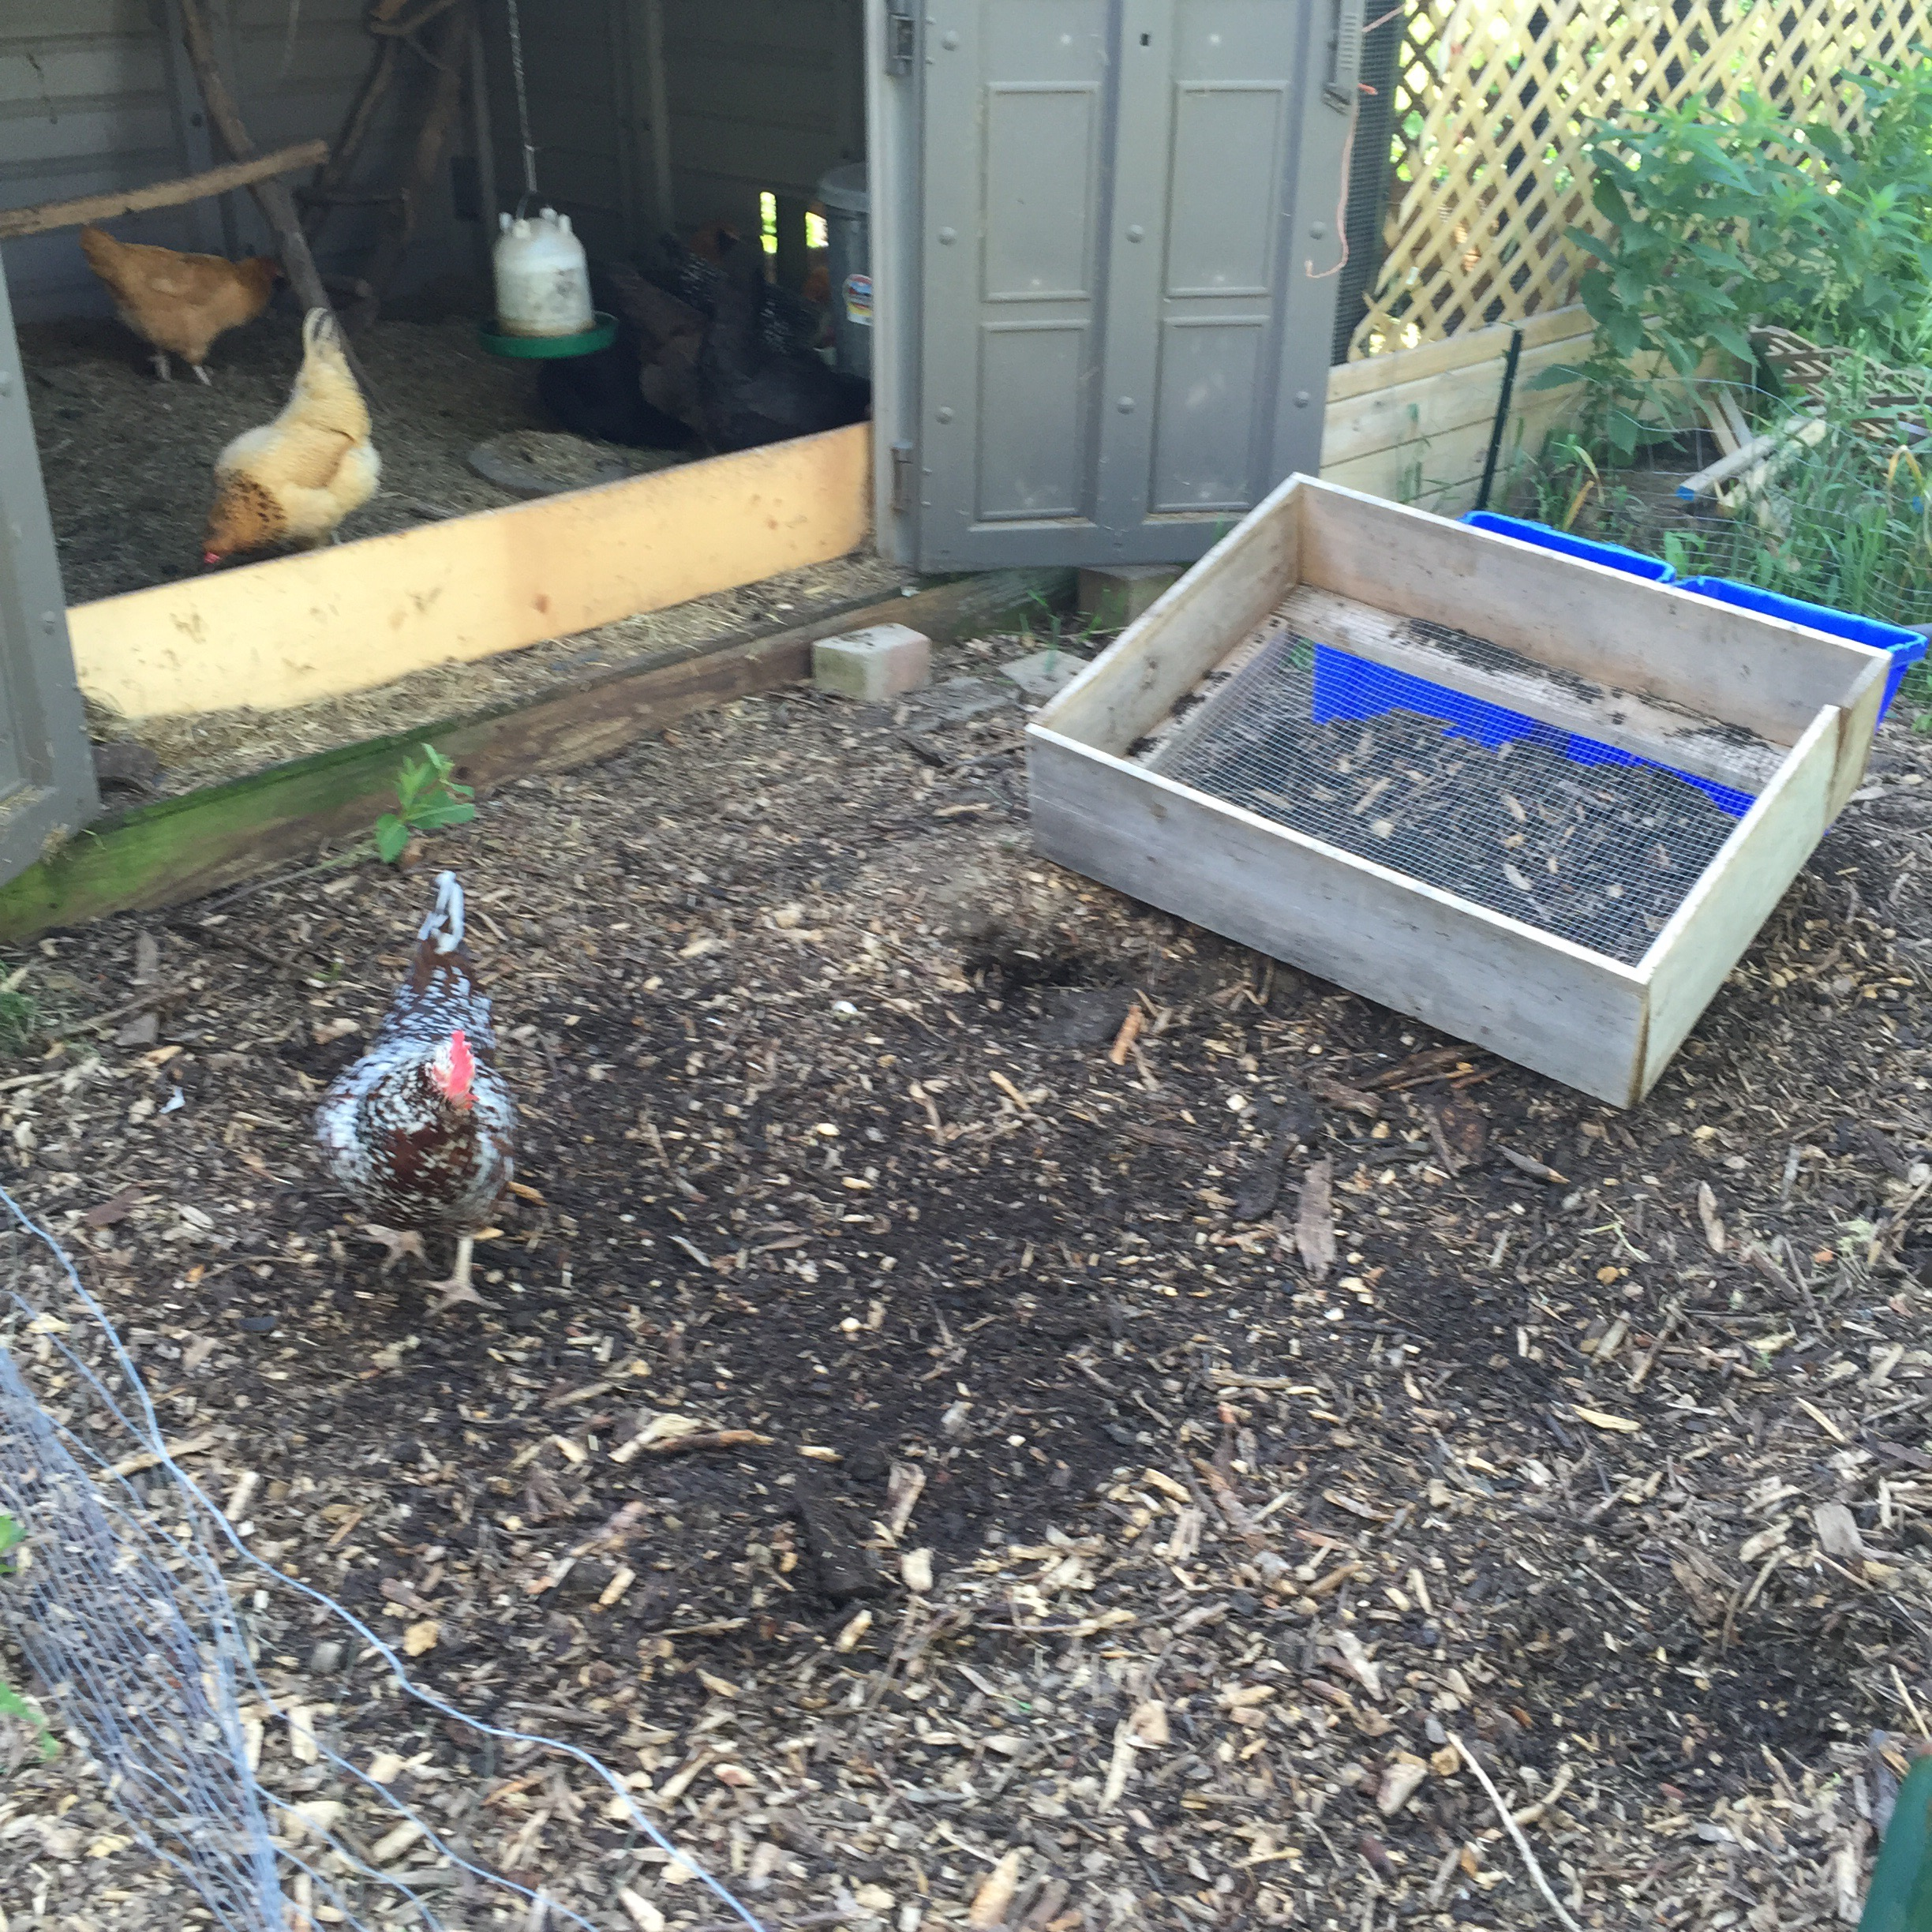 backyard chickens ramial woodchip composting one straw be the